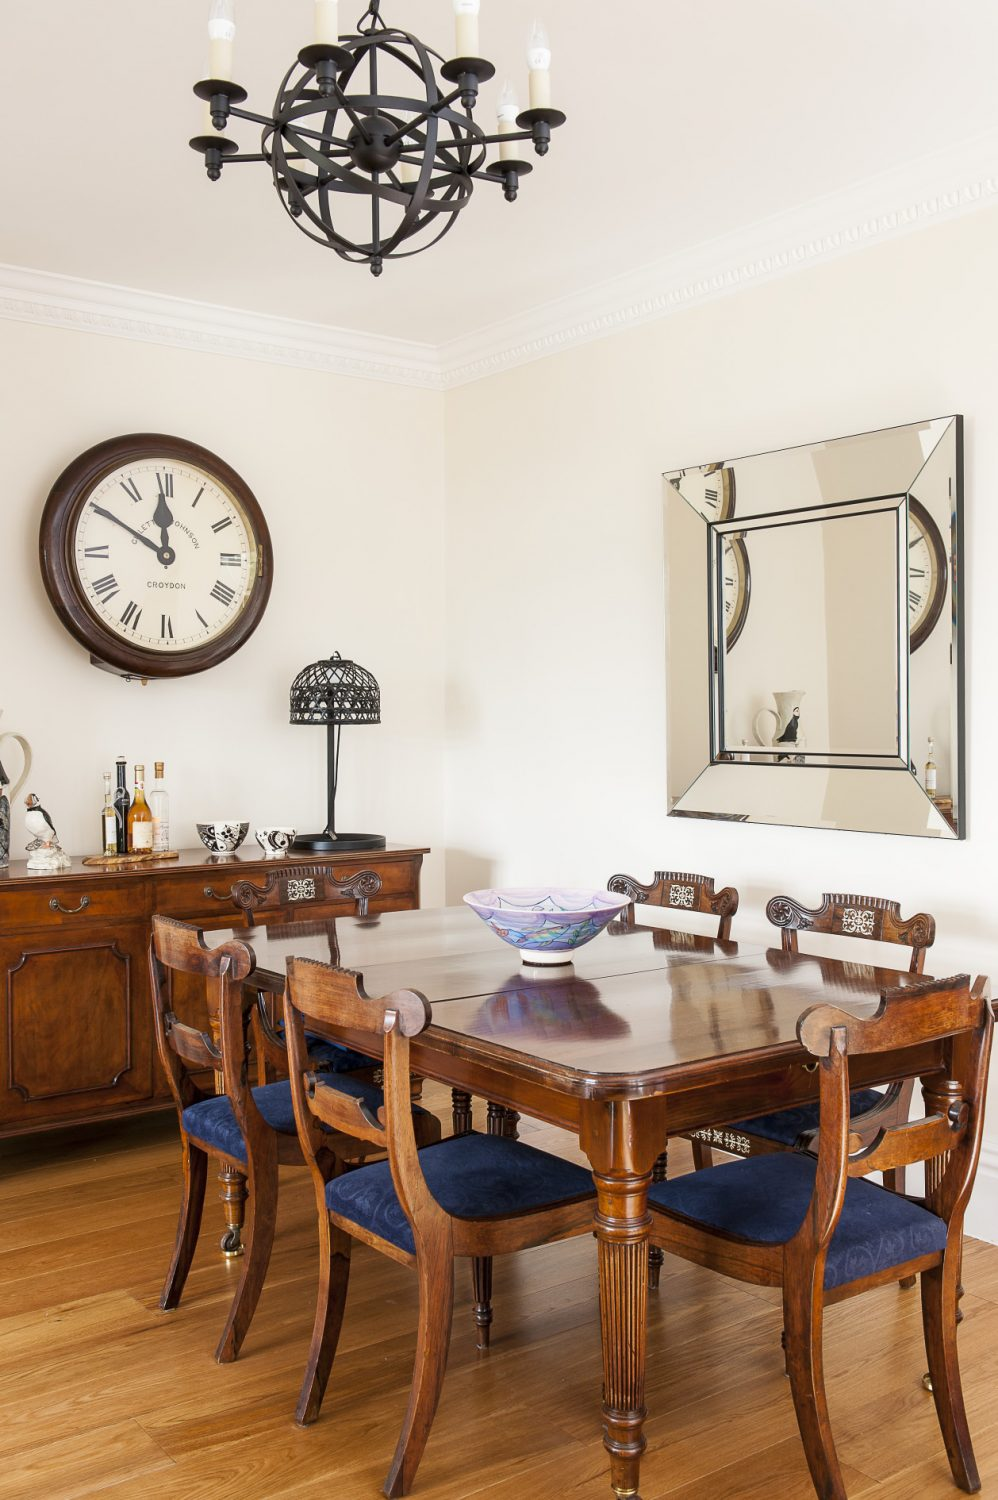 The couple were pleased to find that much of their old furniture fitted into the apartment perfectly